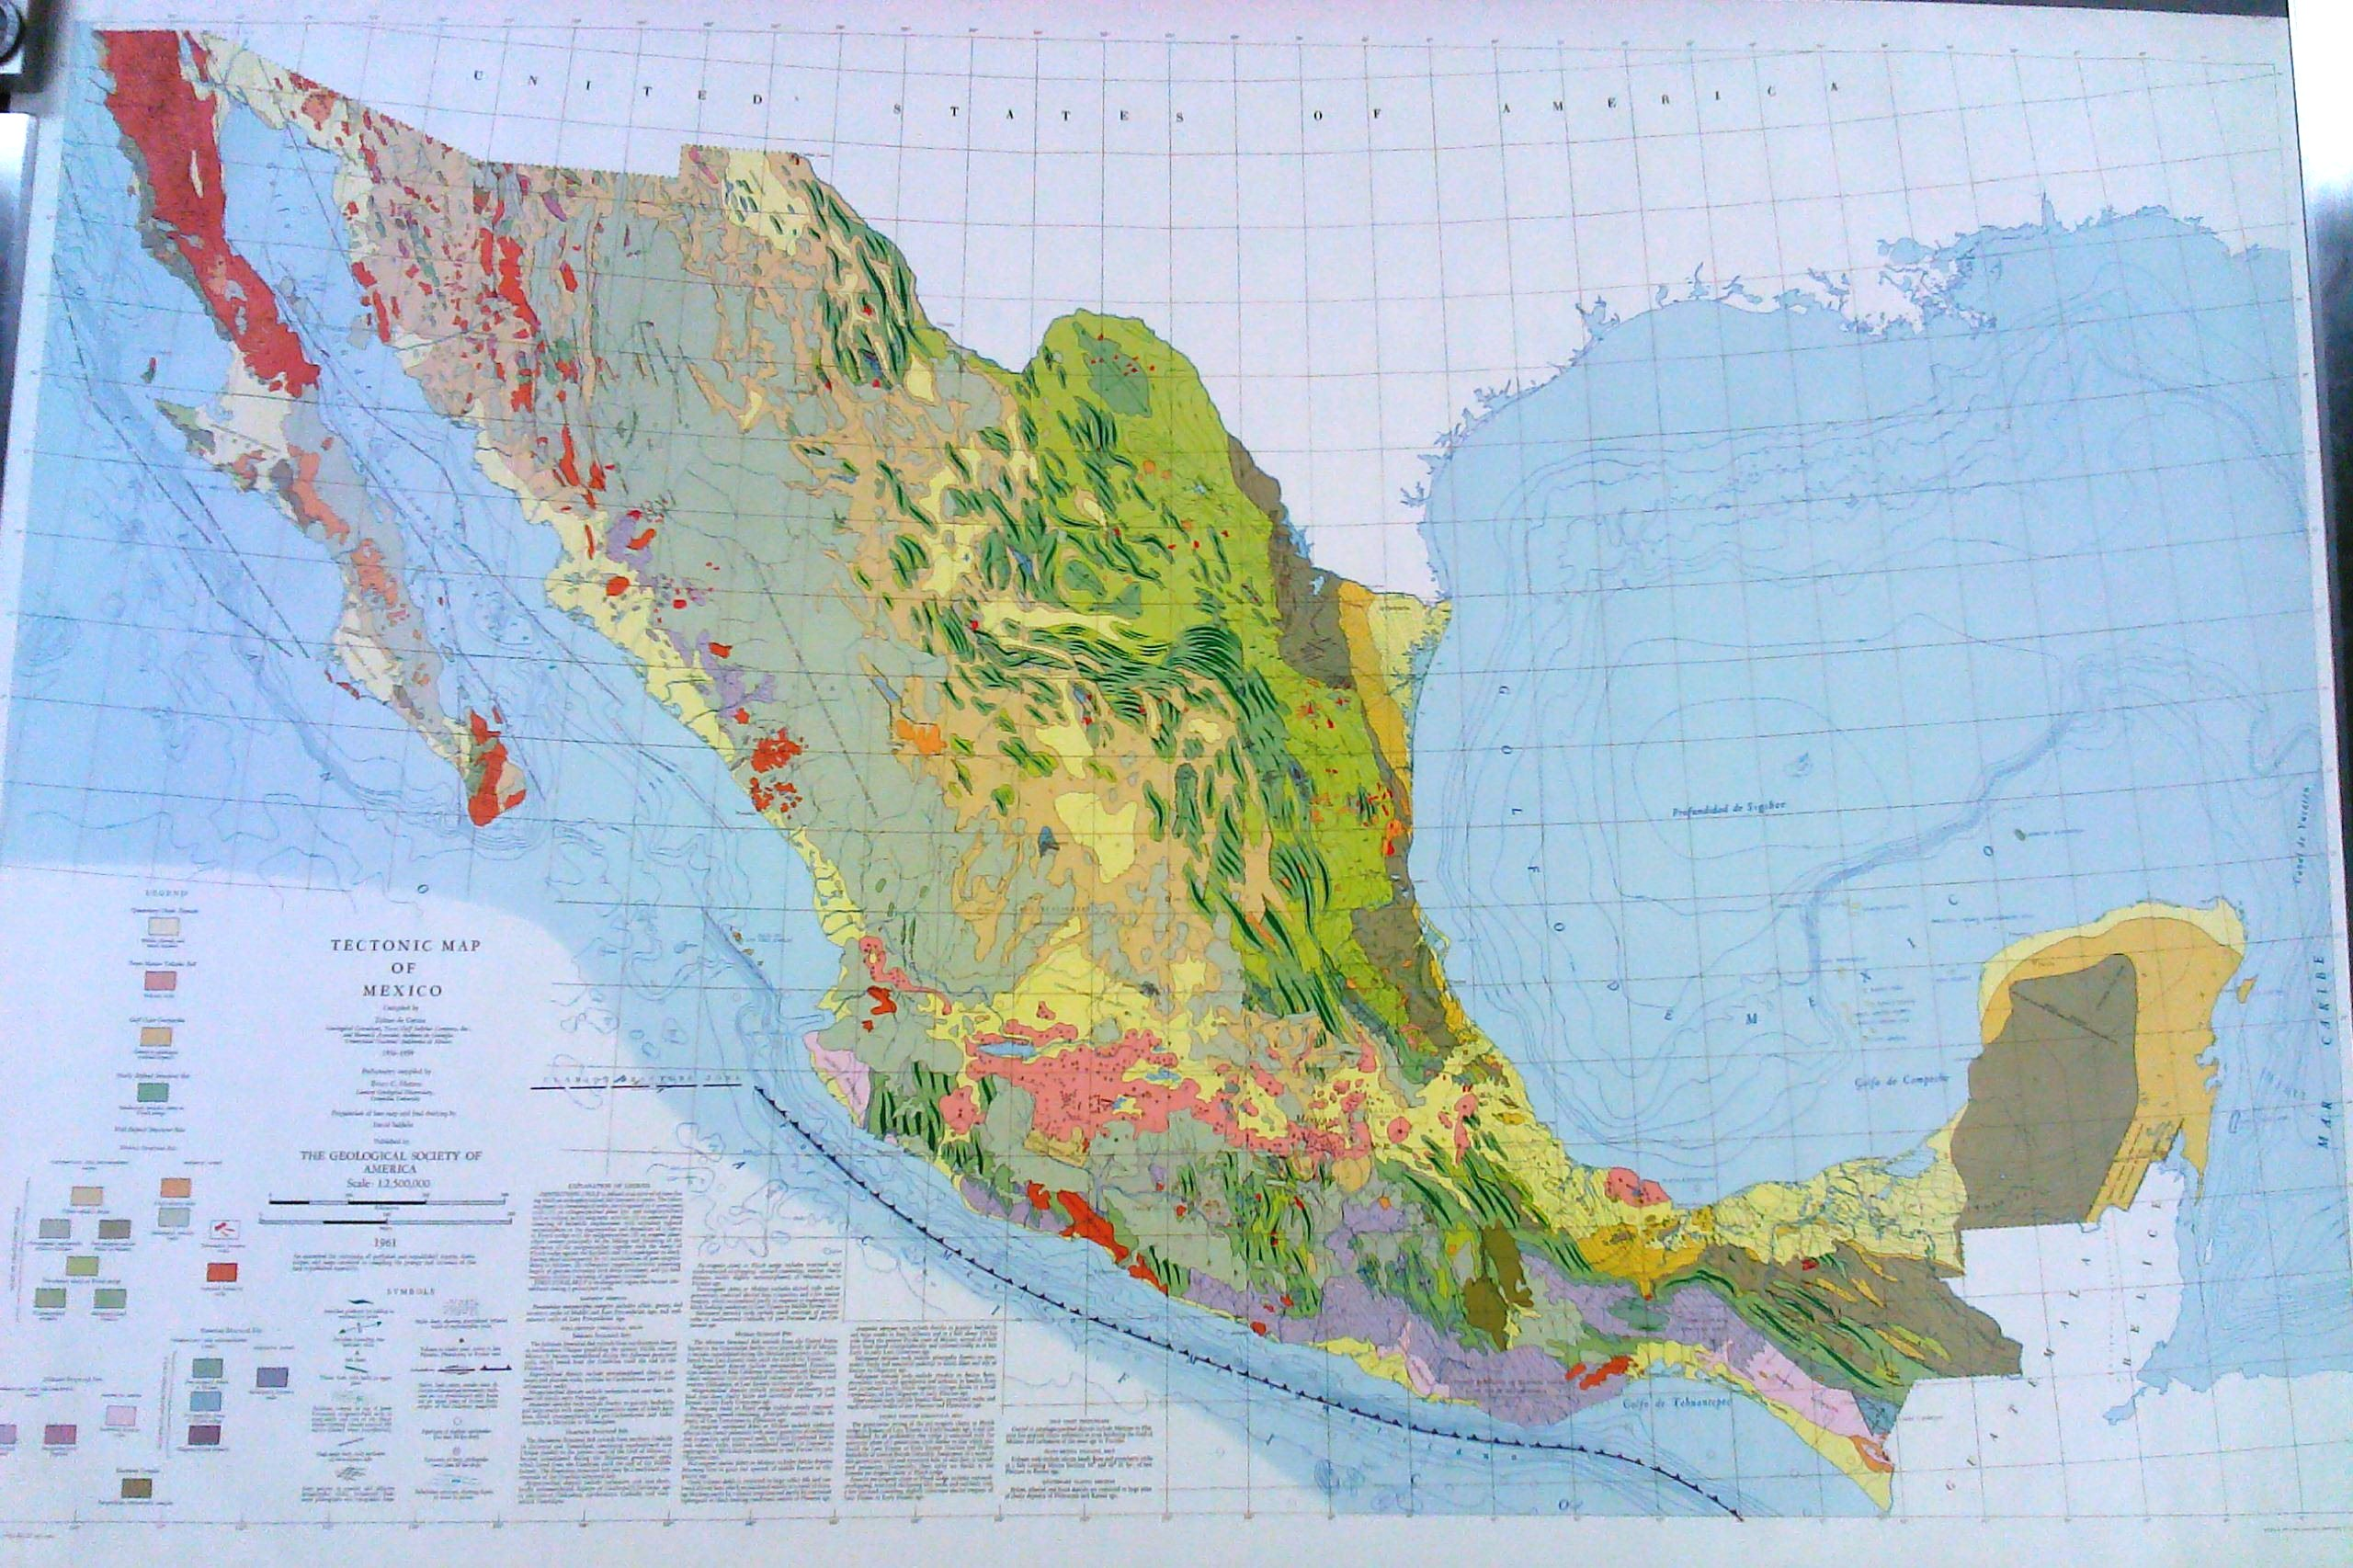 Tectonic Map Of Mexico The Geological Society Of America - The map of mexico